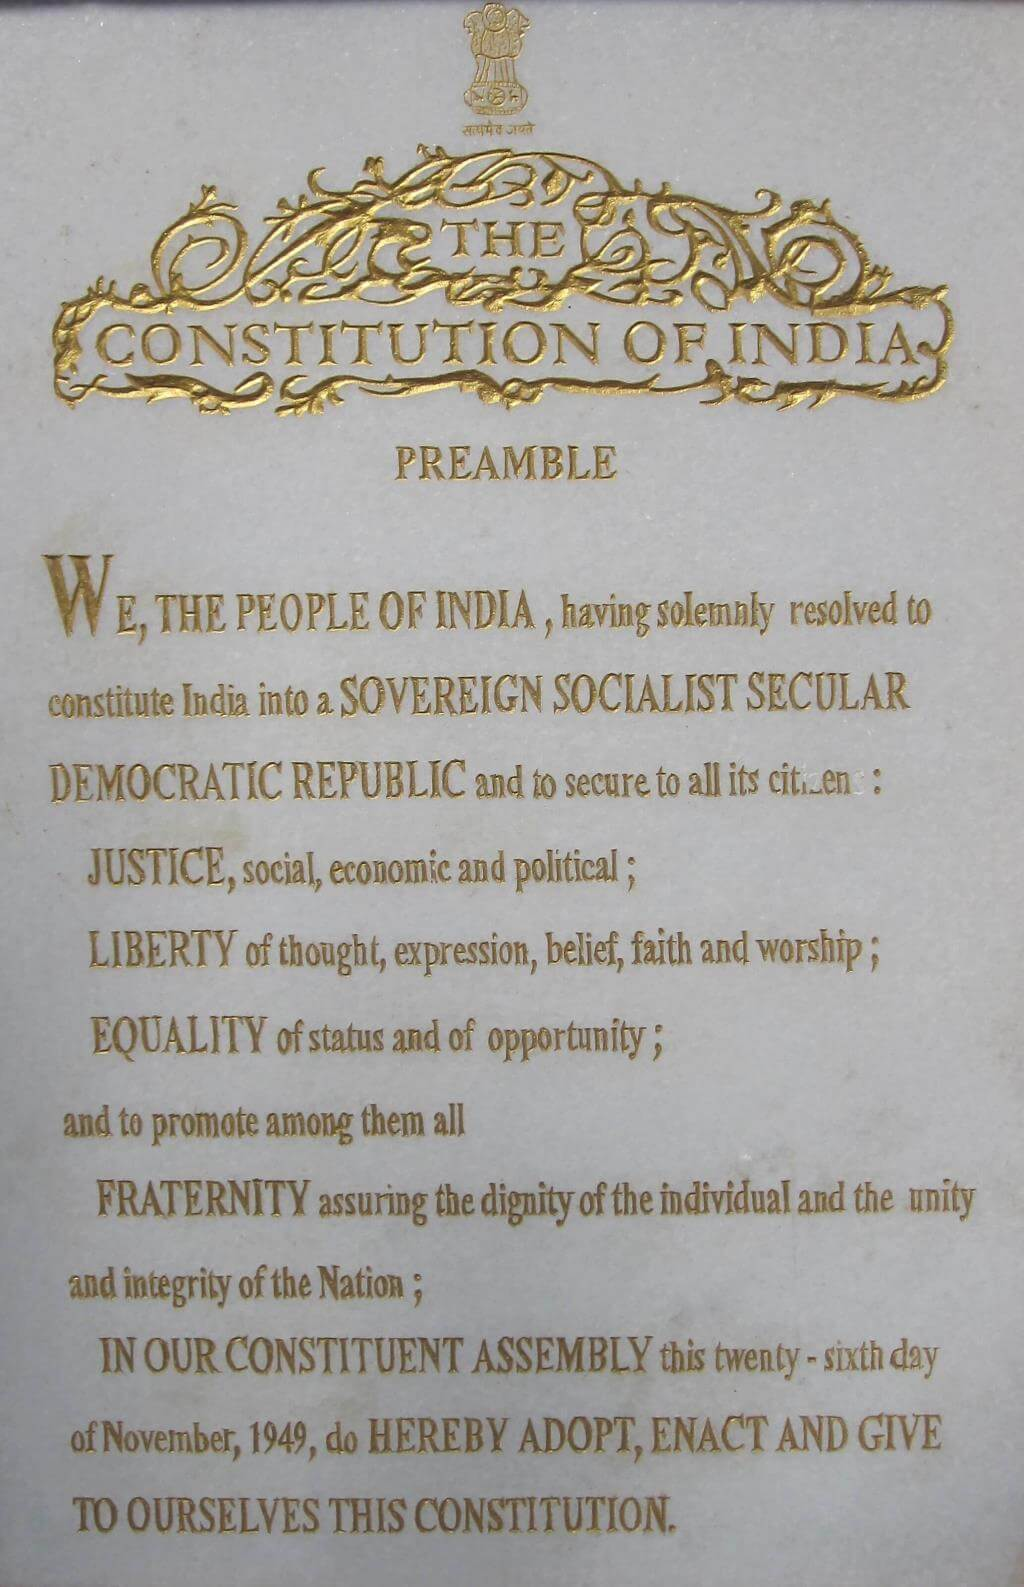 Salient Features of The Indian Constitution UPSC Notes | EduRev